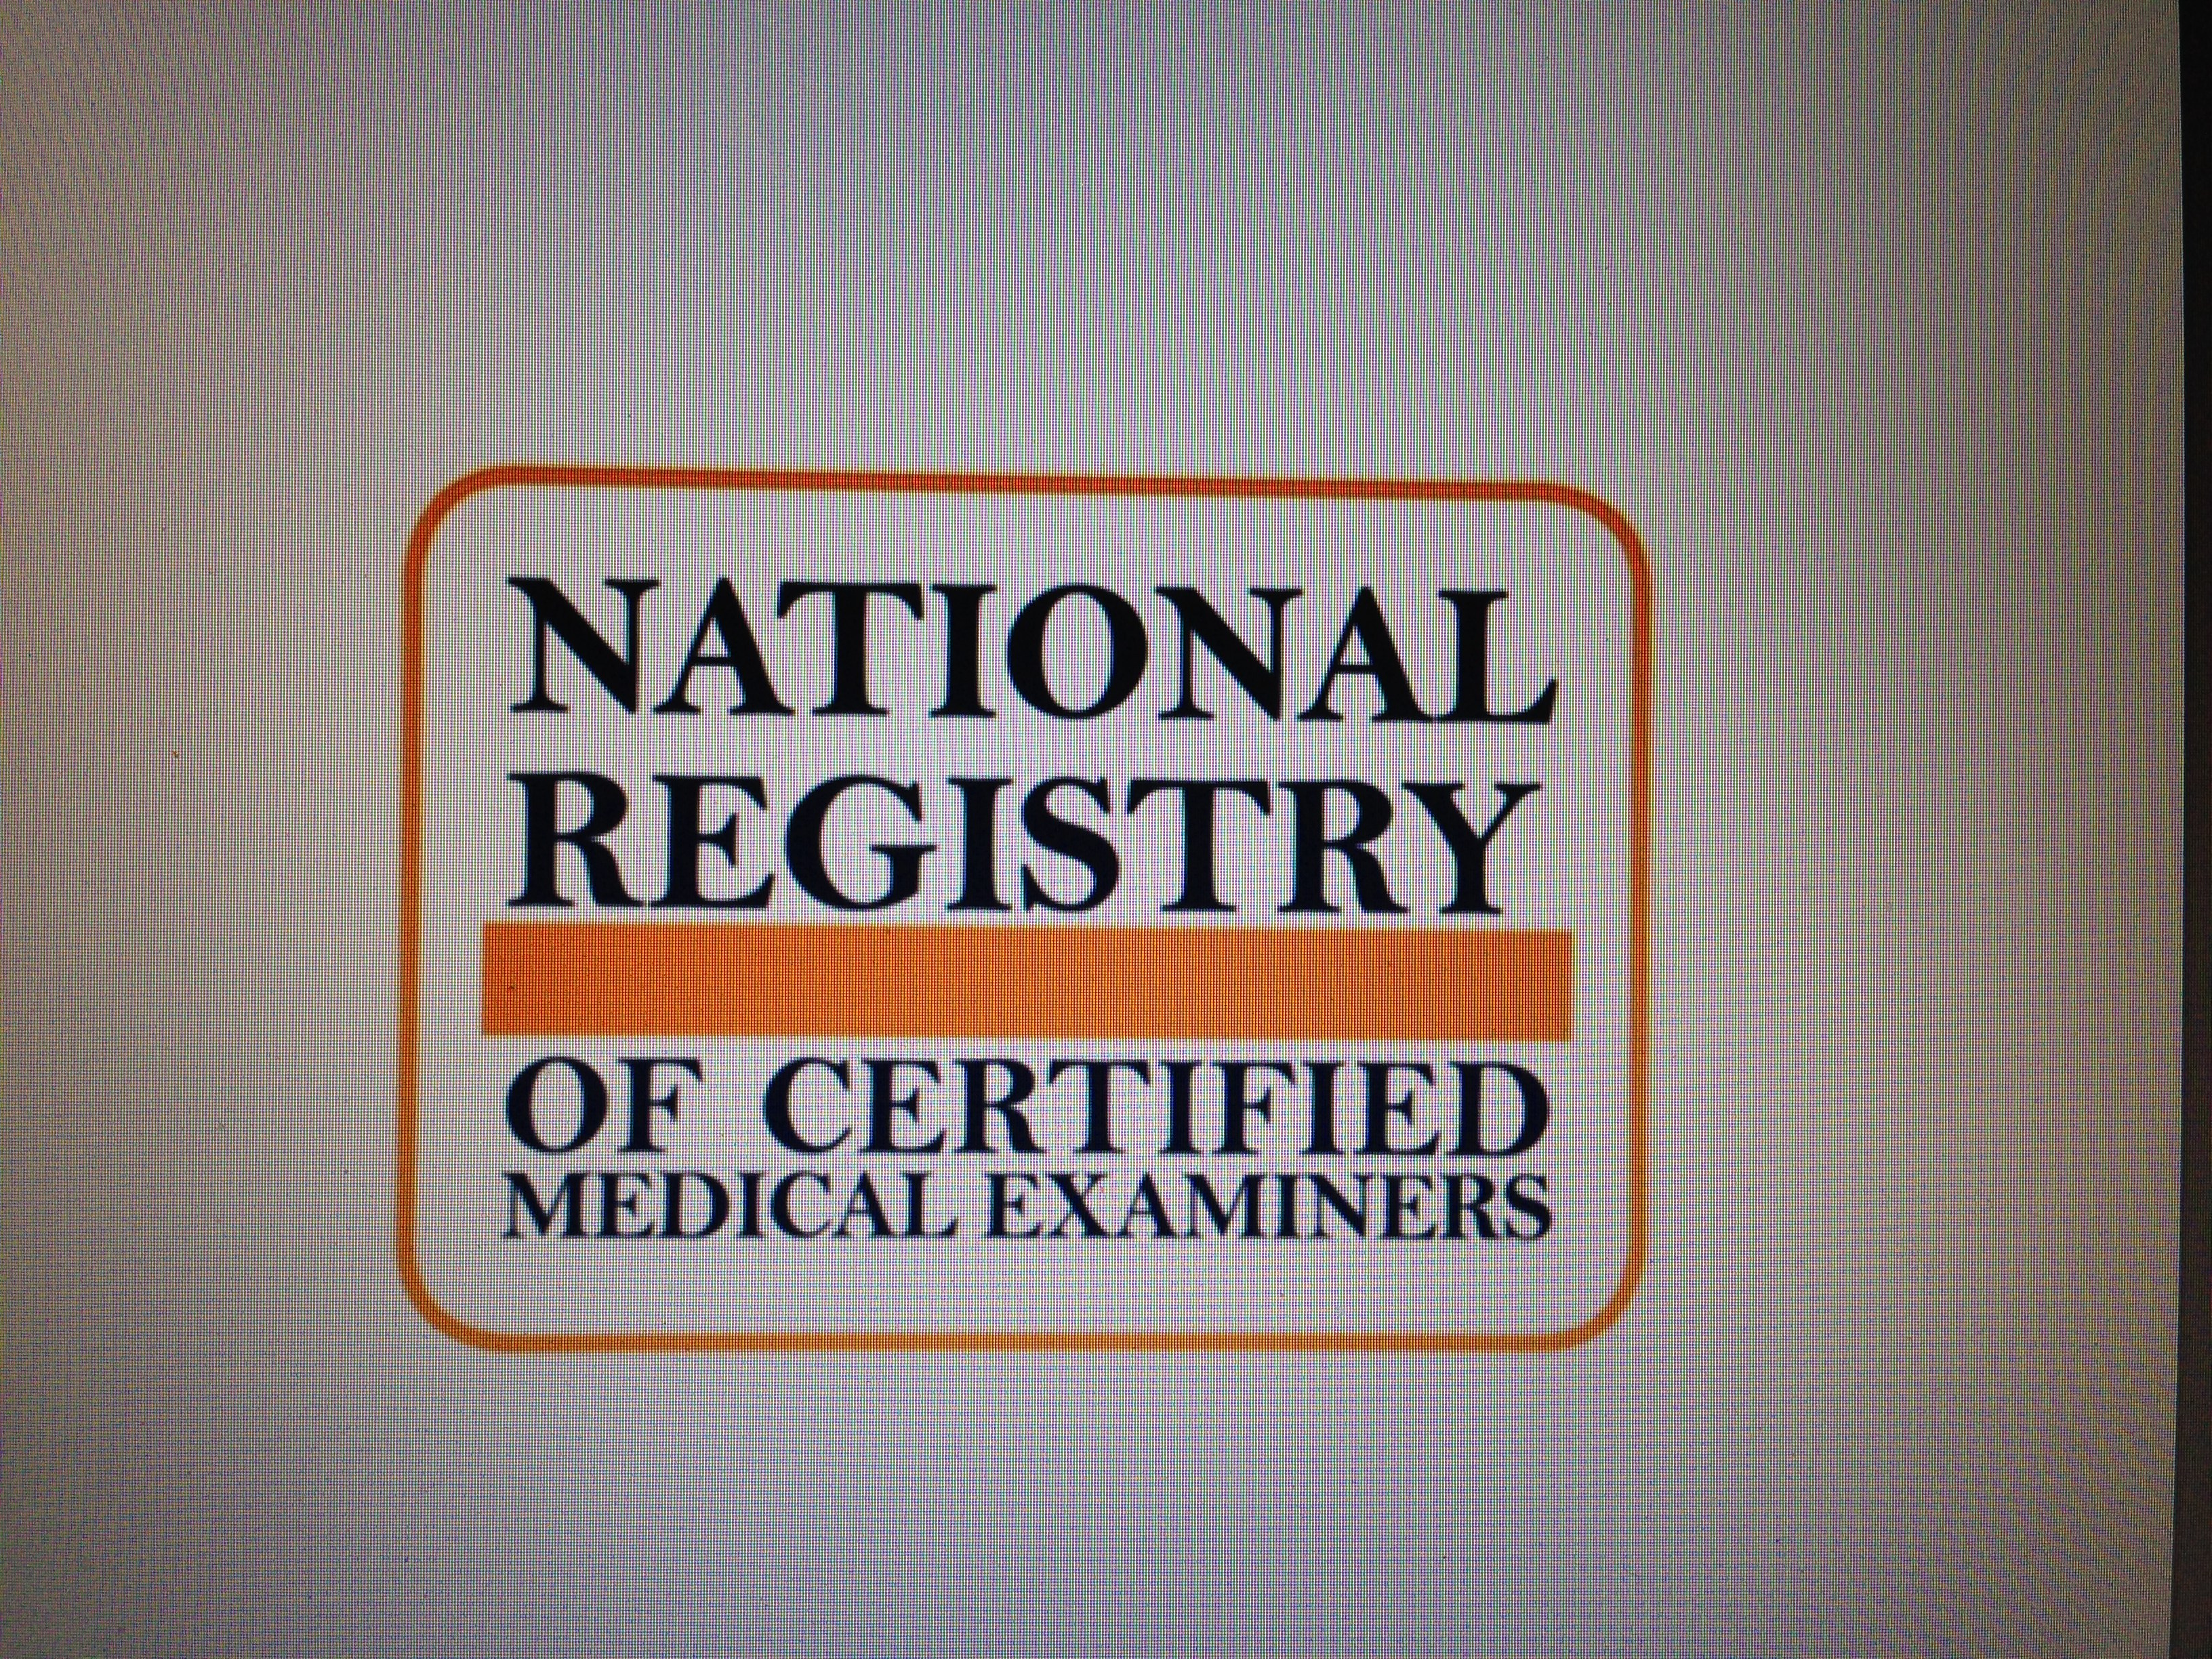 54 055 Registered Medical Examiners In 2017 Source Nrcme Data